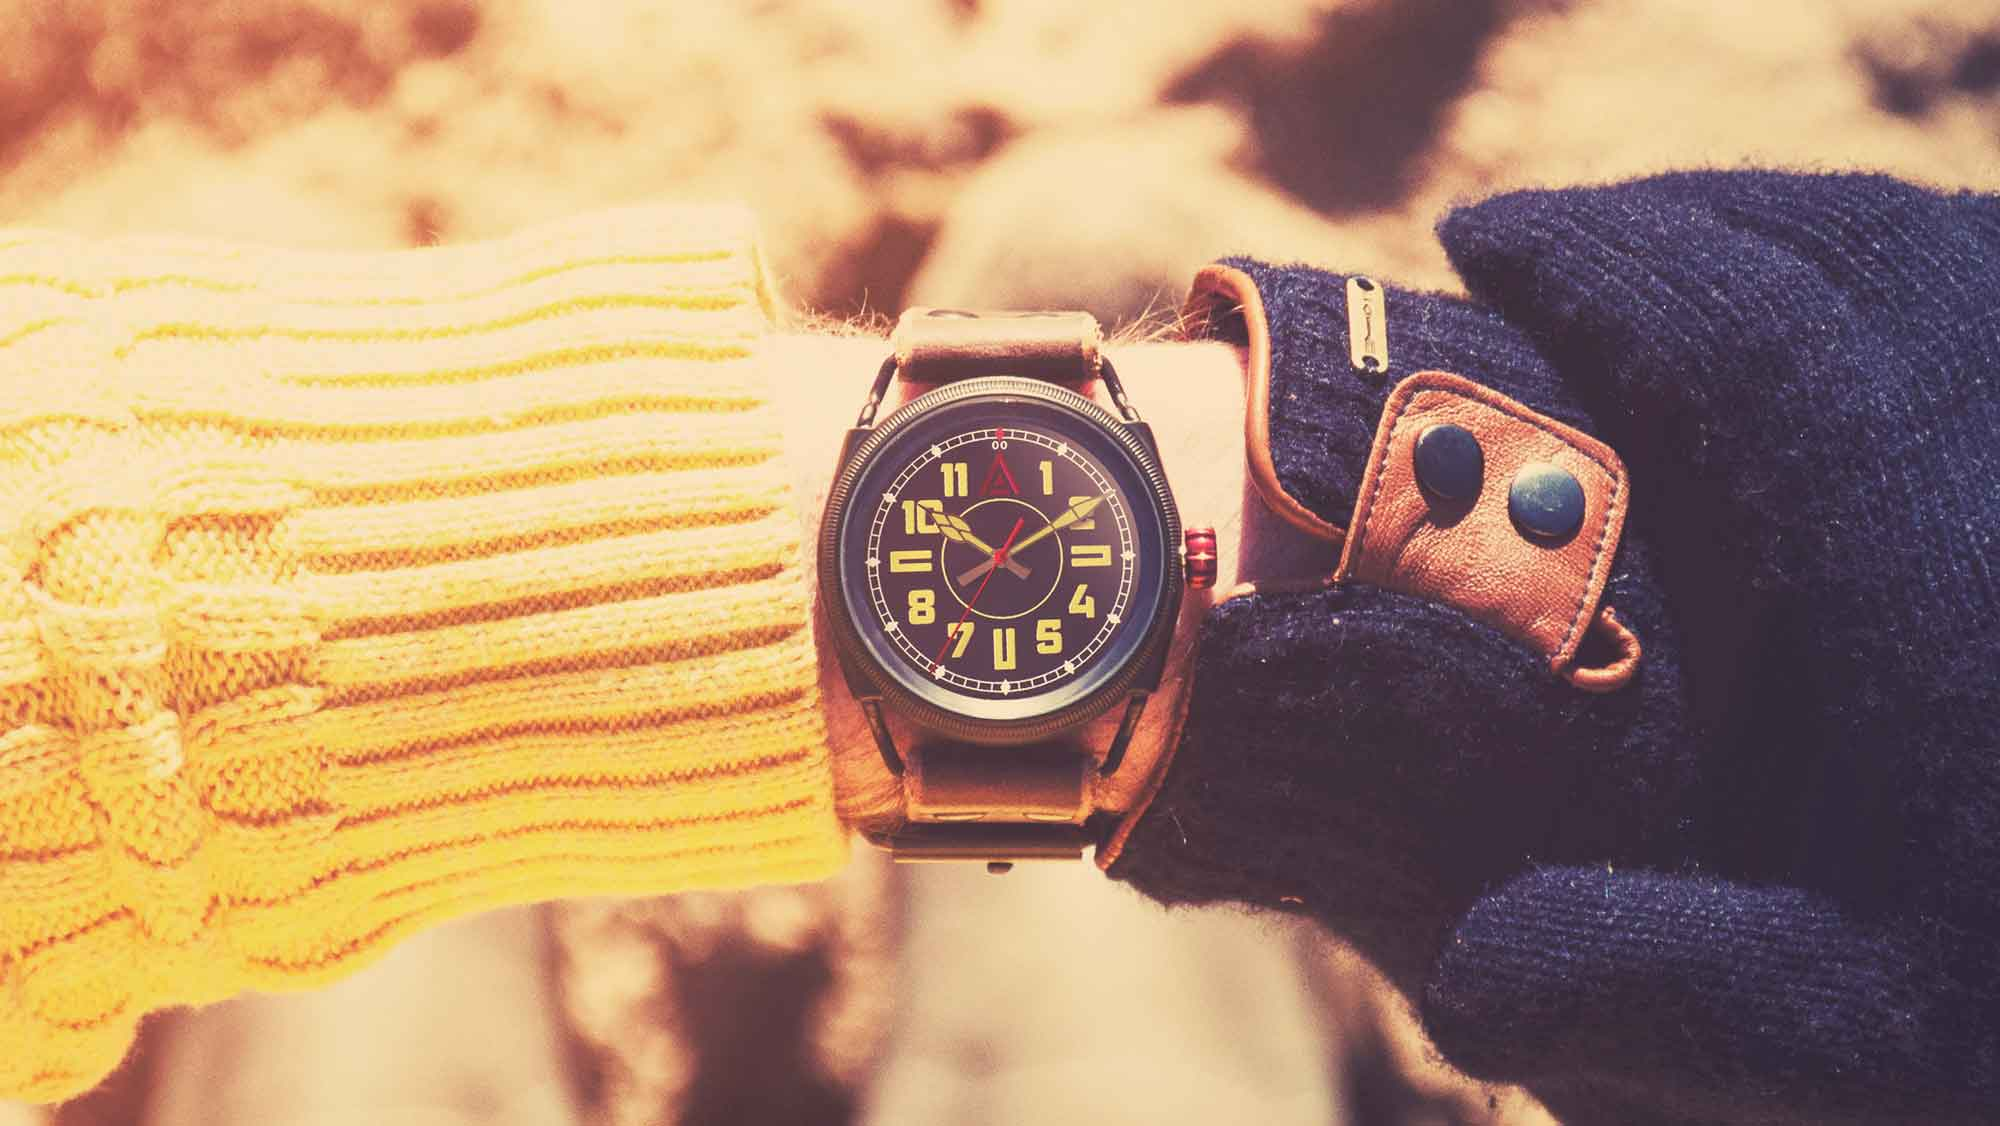 military style watches no 1914 blue wt author wrist shot beach